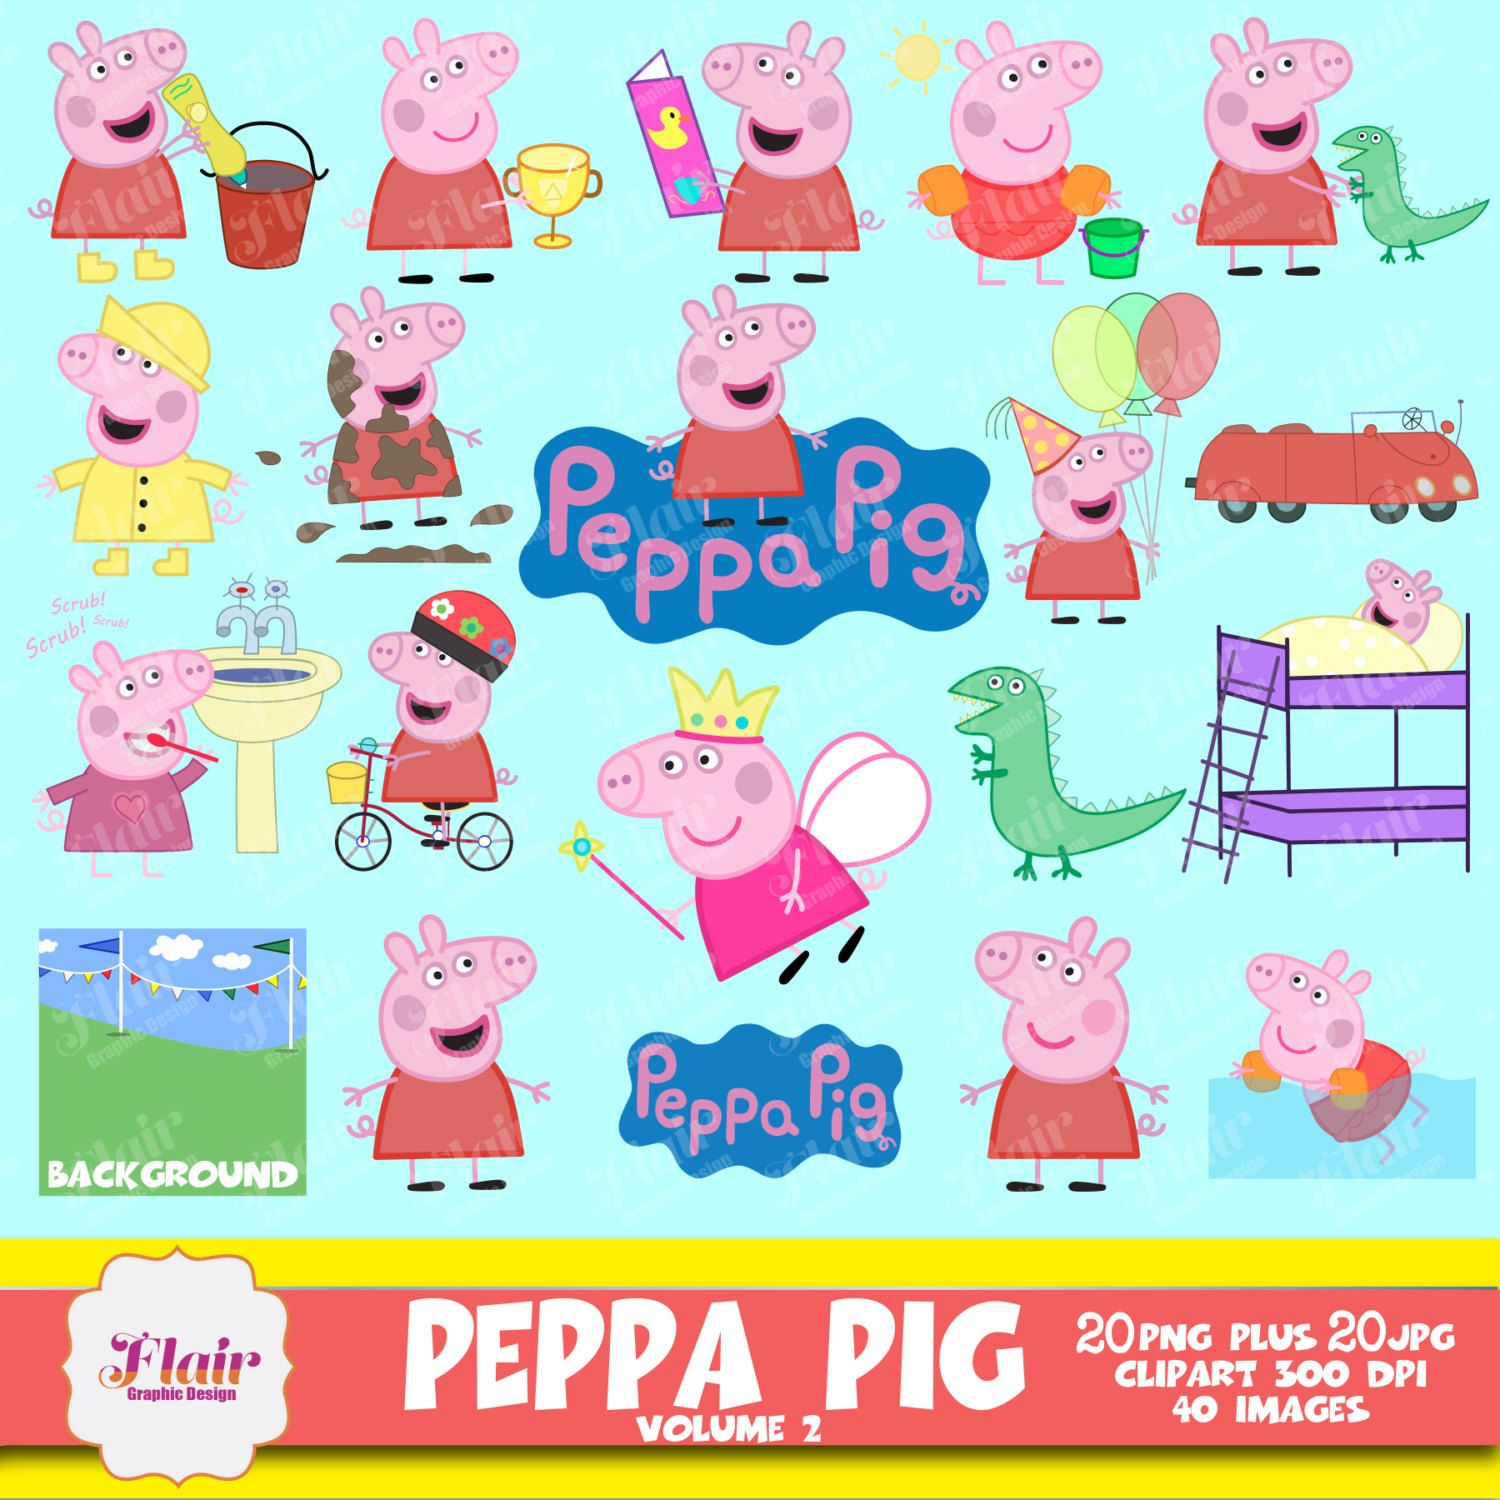 New age mama peppa pig zack u quack easter dvd giveaway my